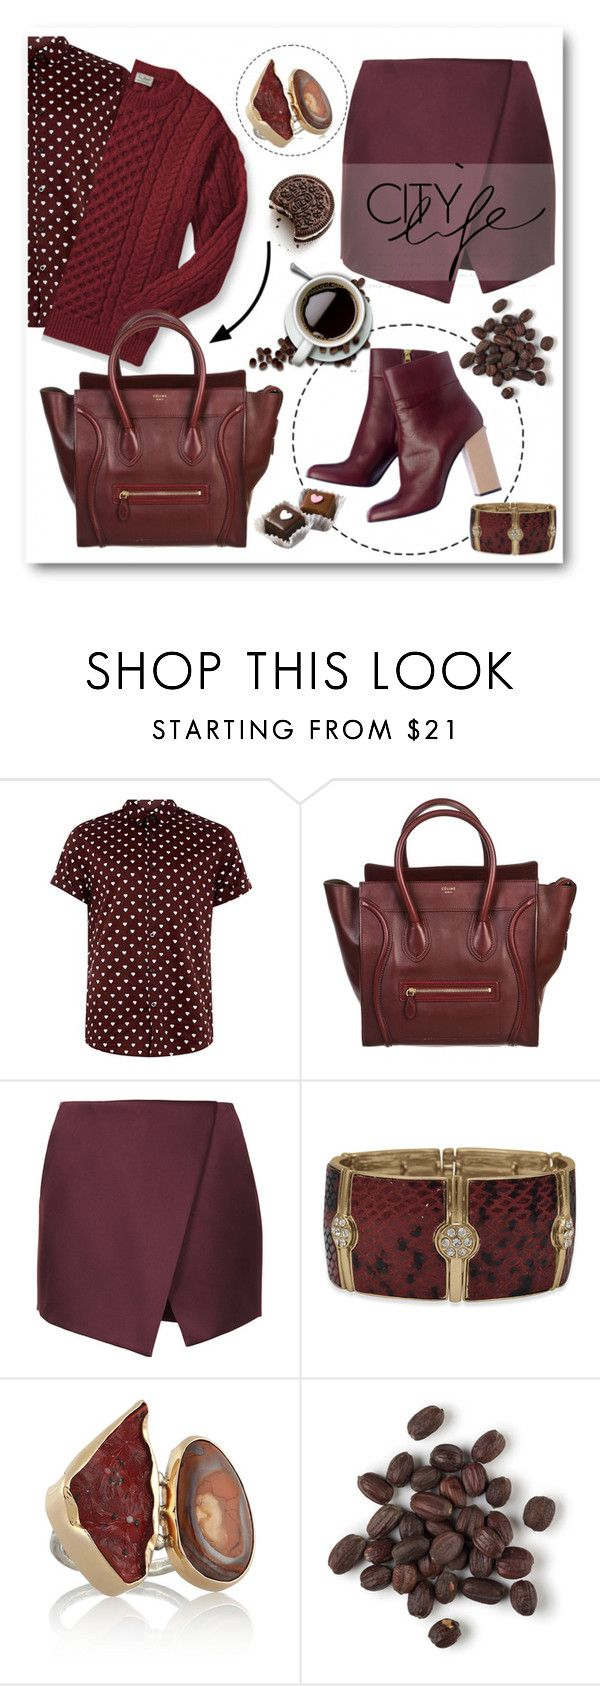 Tote Bags by queen t e a ❤ liked on Polyvore featuring Topman, Panda.